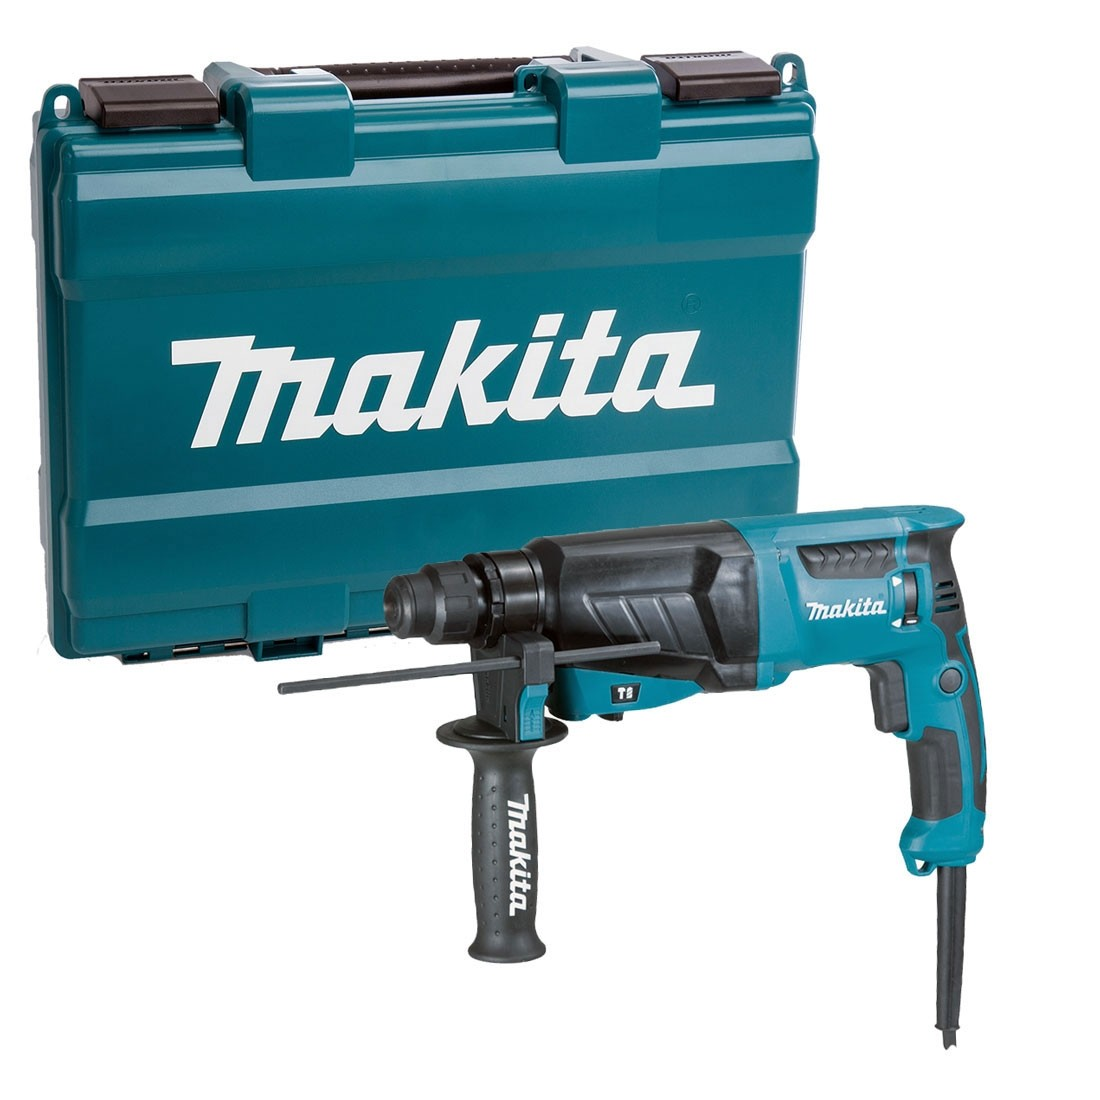 Makita HR2630 110V 3-Mode SDS Plus Rotary Hammer Drill 26mm - Variable Speed Control by Trigger